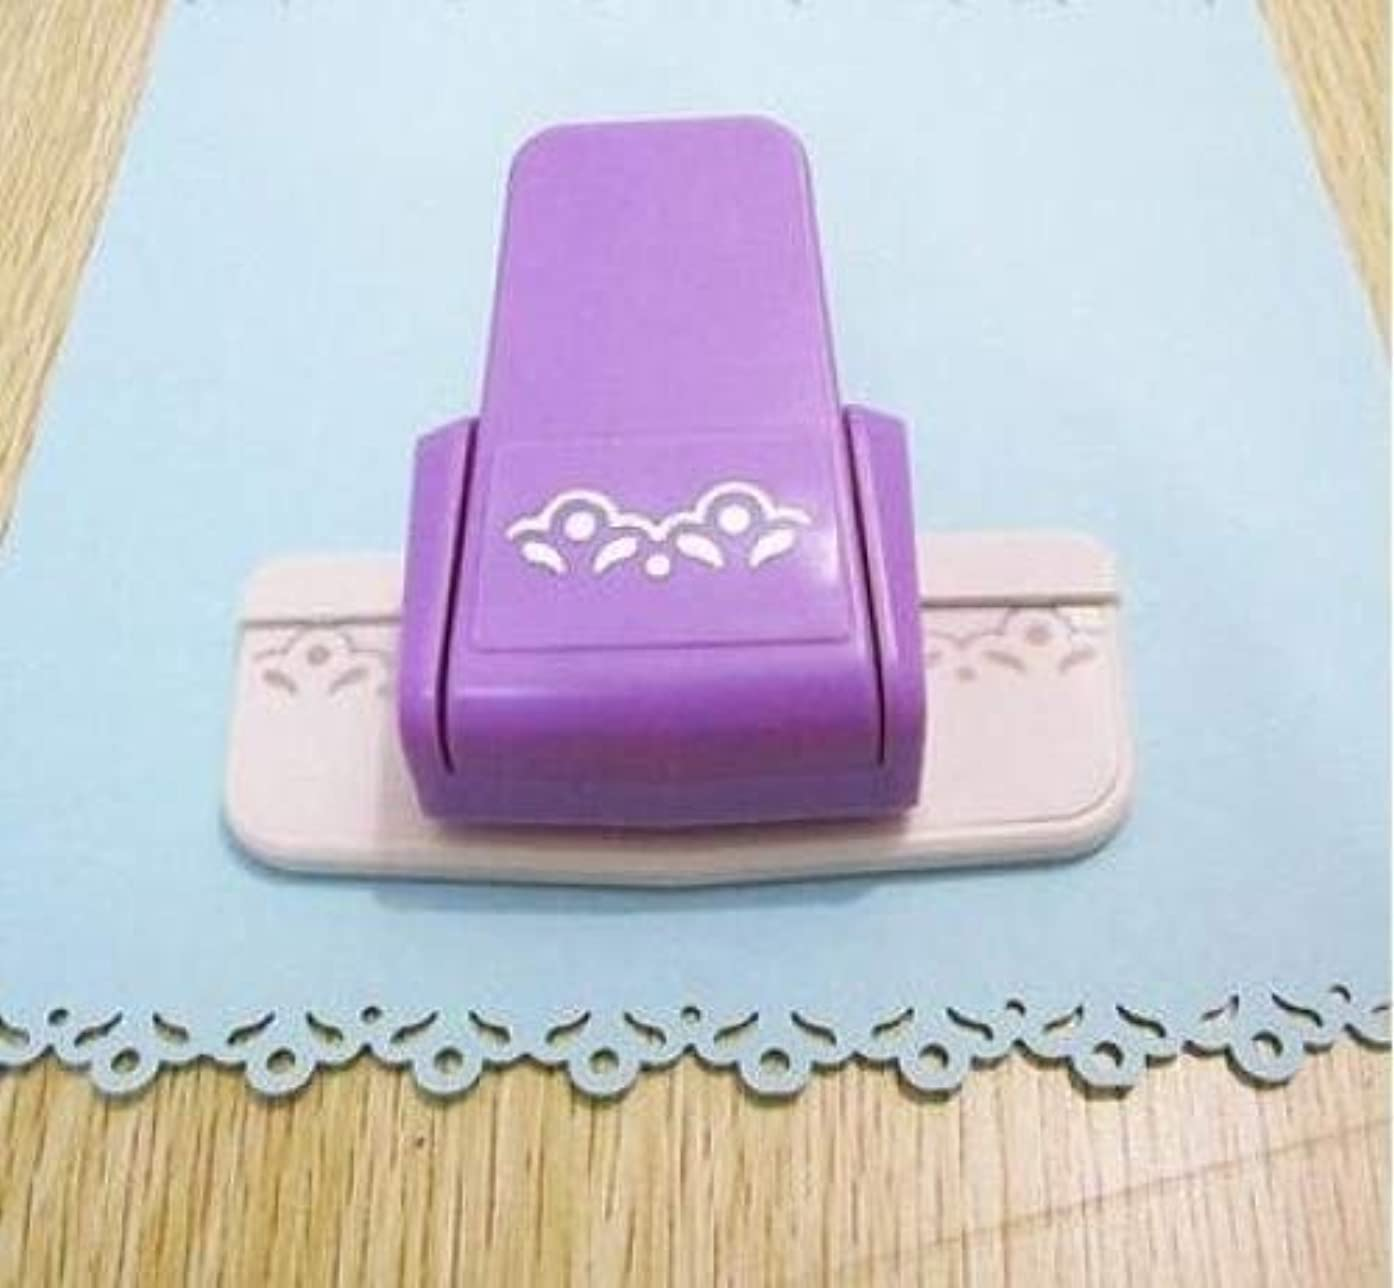 Fascola 1 pcs New fancy border punch S flower design embossing Punch scrapbooking handmade edge device DIY paper cutter Handmade Craft gift (Style 1)